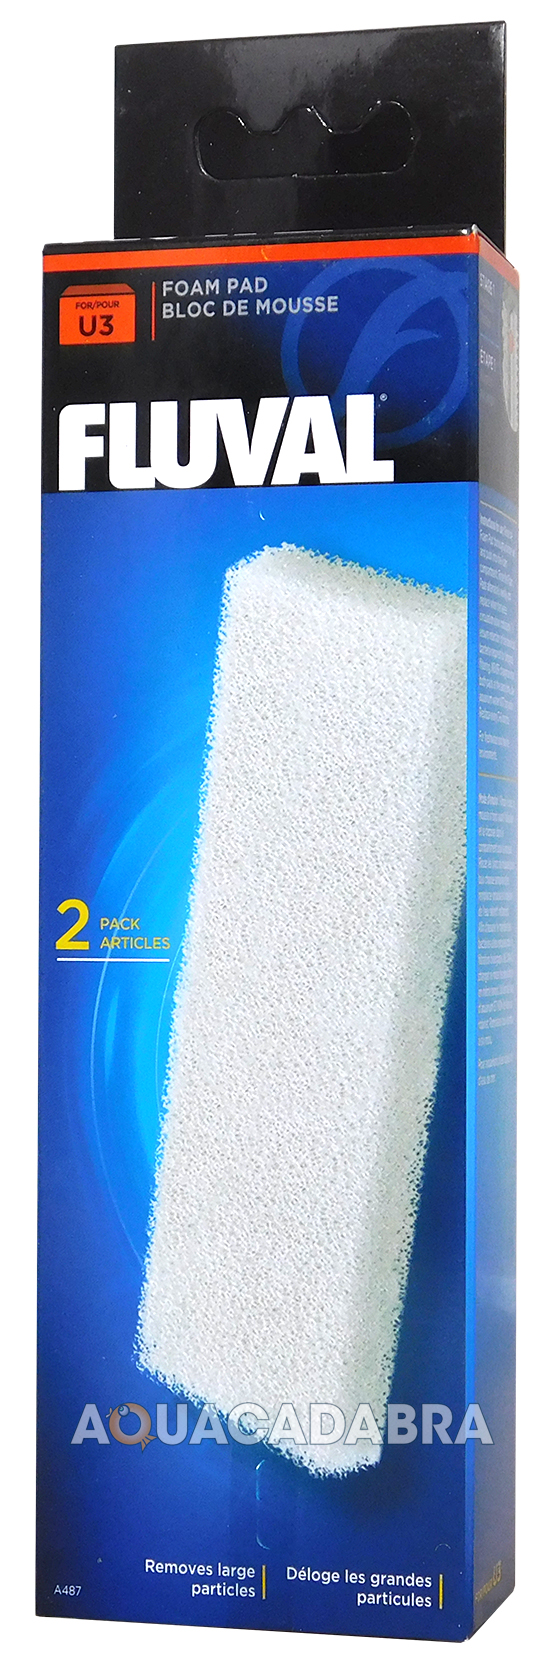 Fluval filter media replacement foam pads fish tank for Fluval fish tank filter